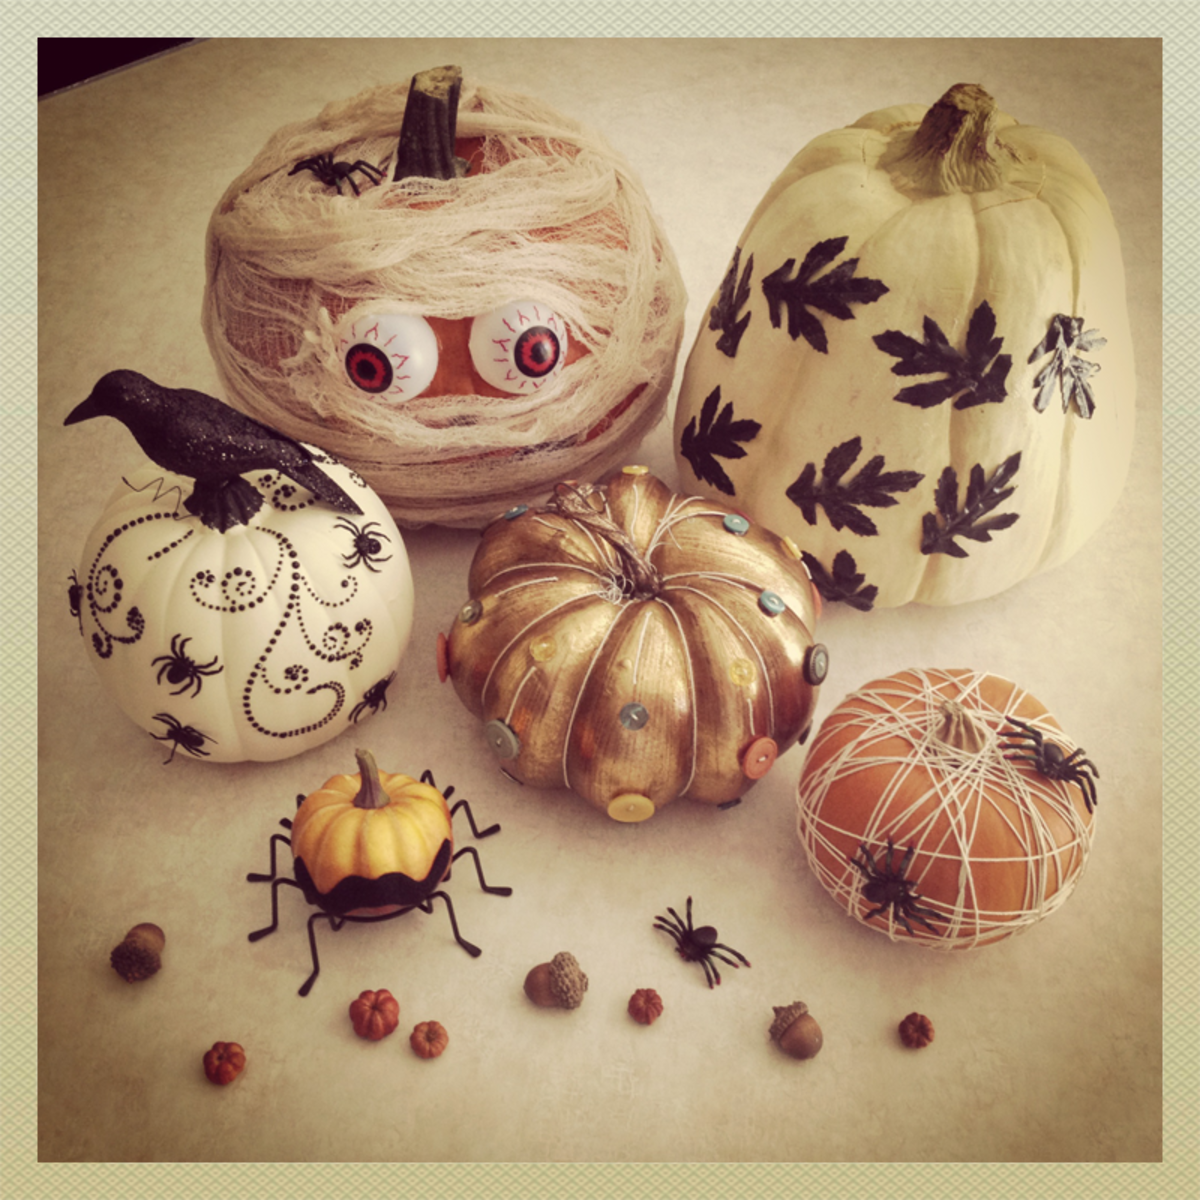 creative pumpkin designs - Halloween Pumpkin Designs Without Carving